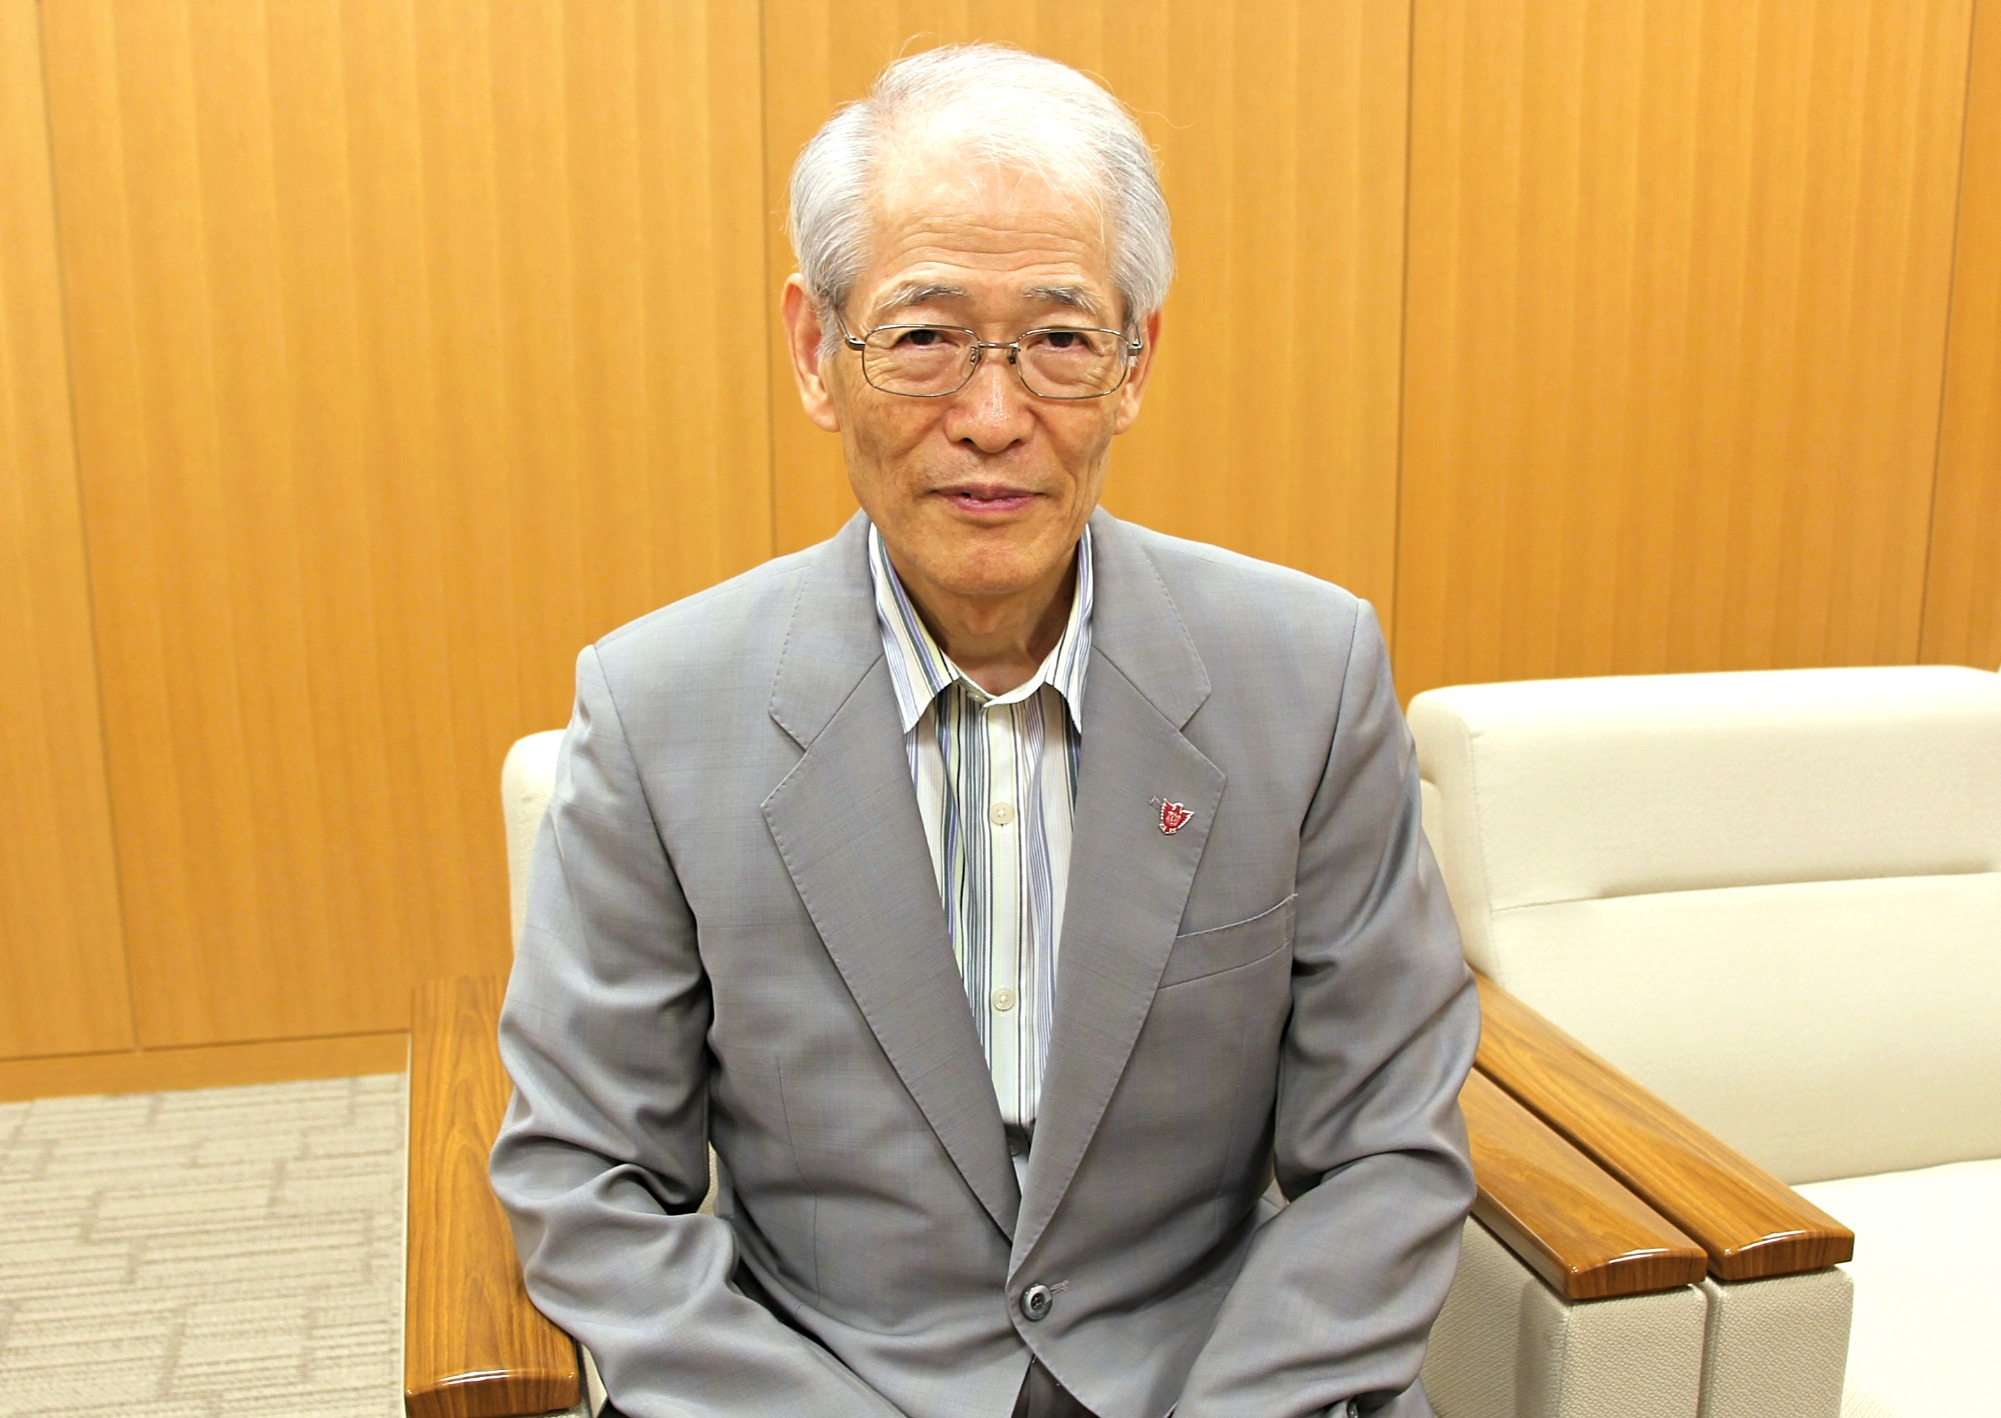 Interview: Sophia University Graduate School Chancellor Fr. Toshiaki Koso